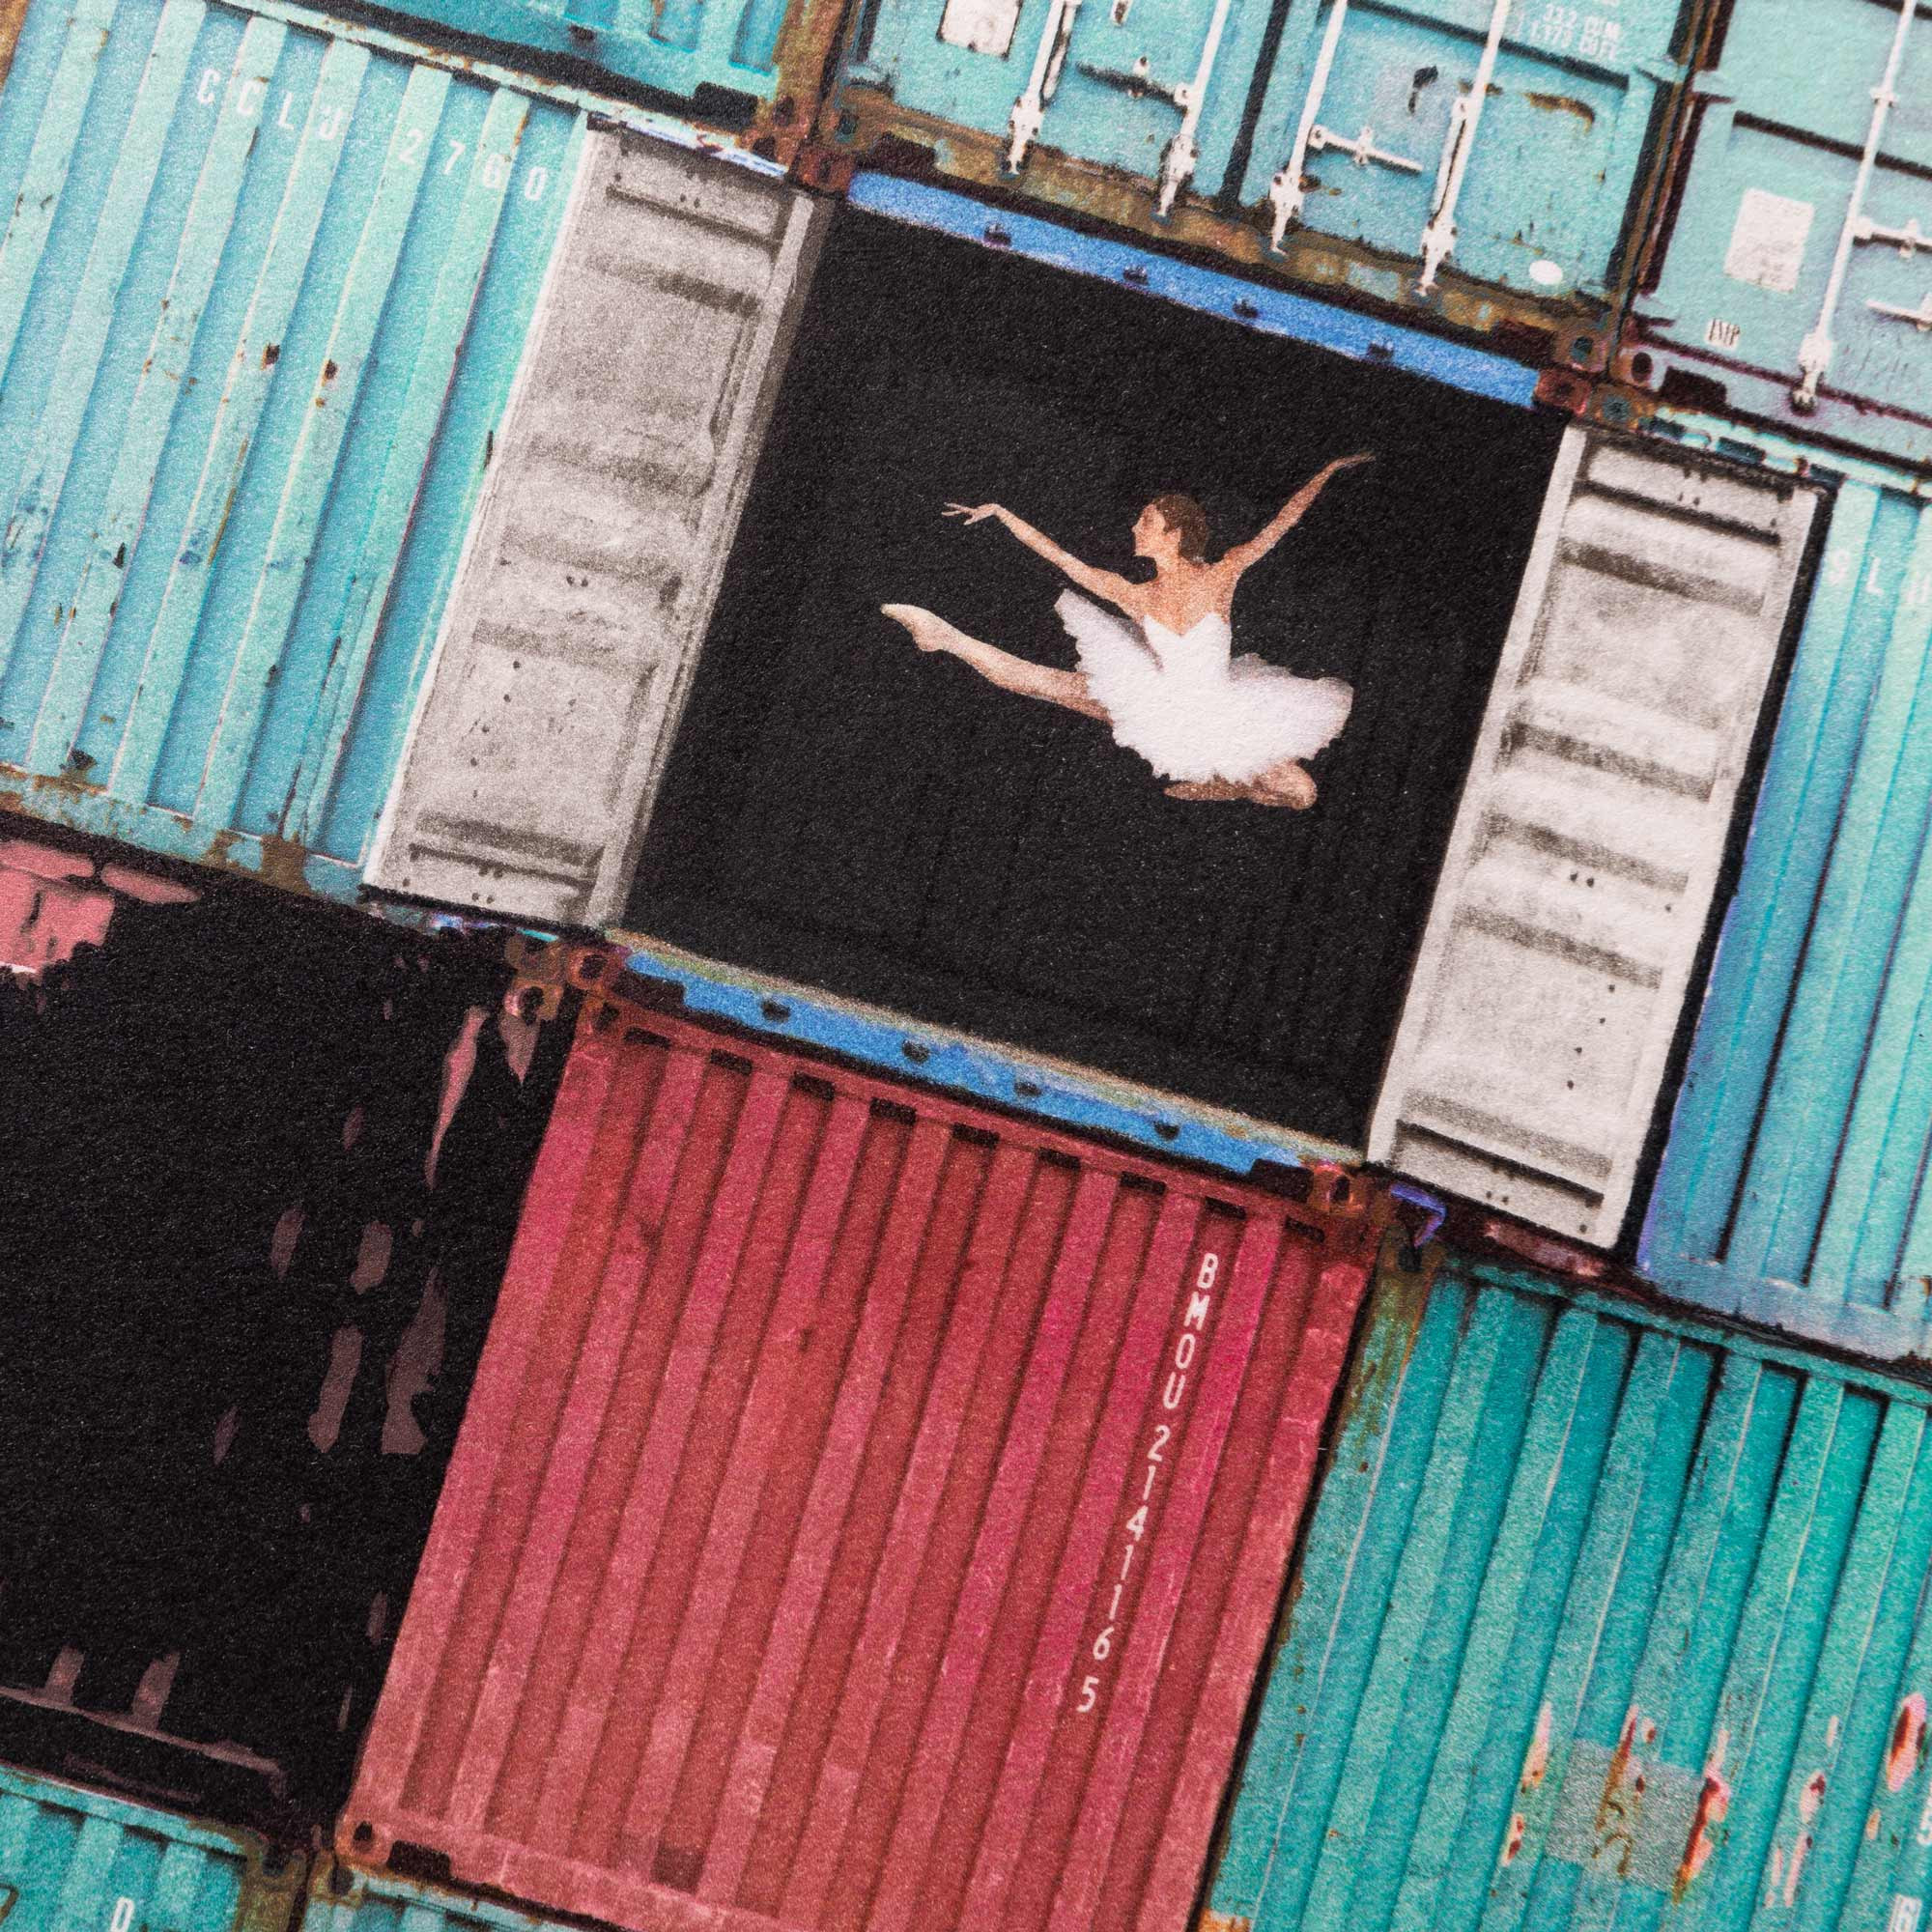 The ballerina jumping in containers, Le Havre, France, 2014